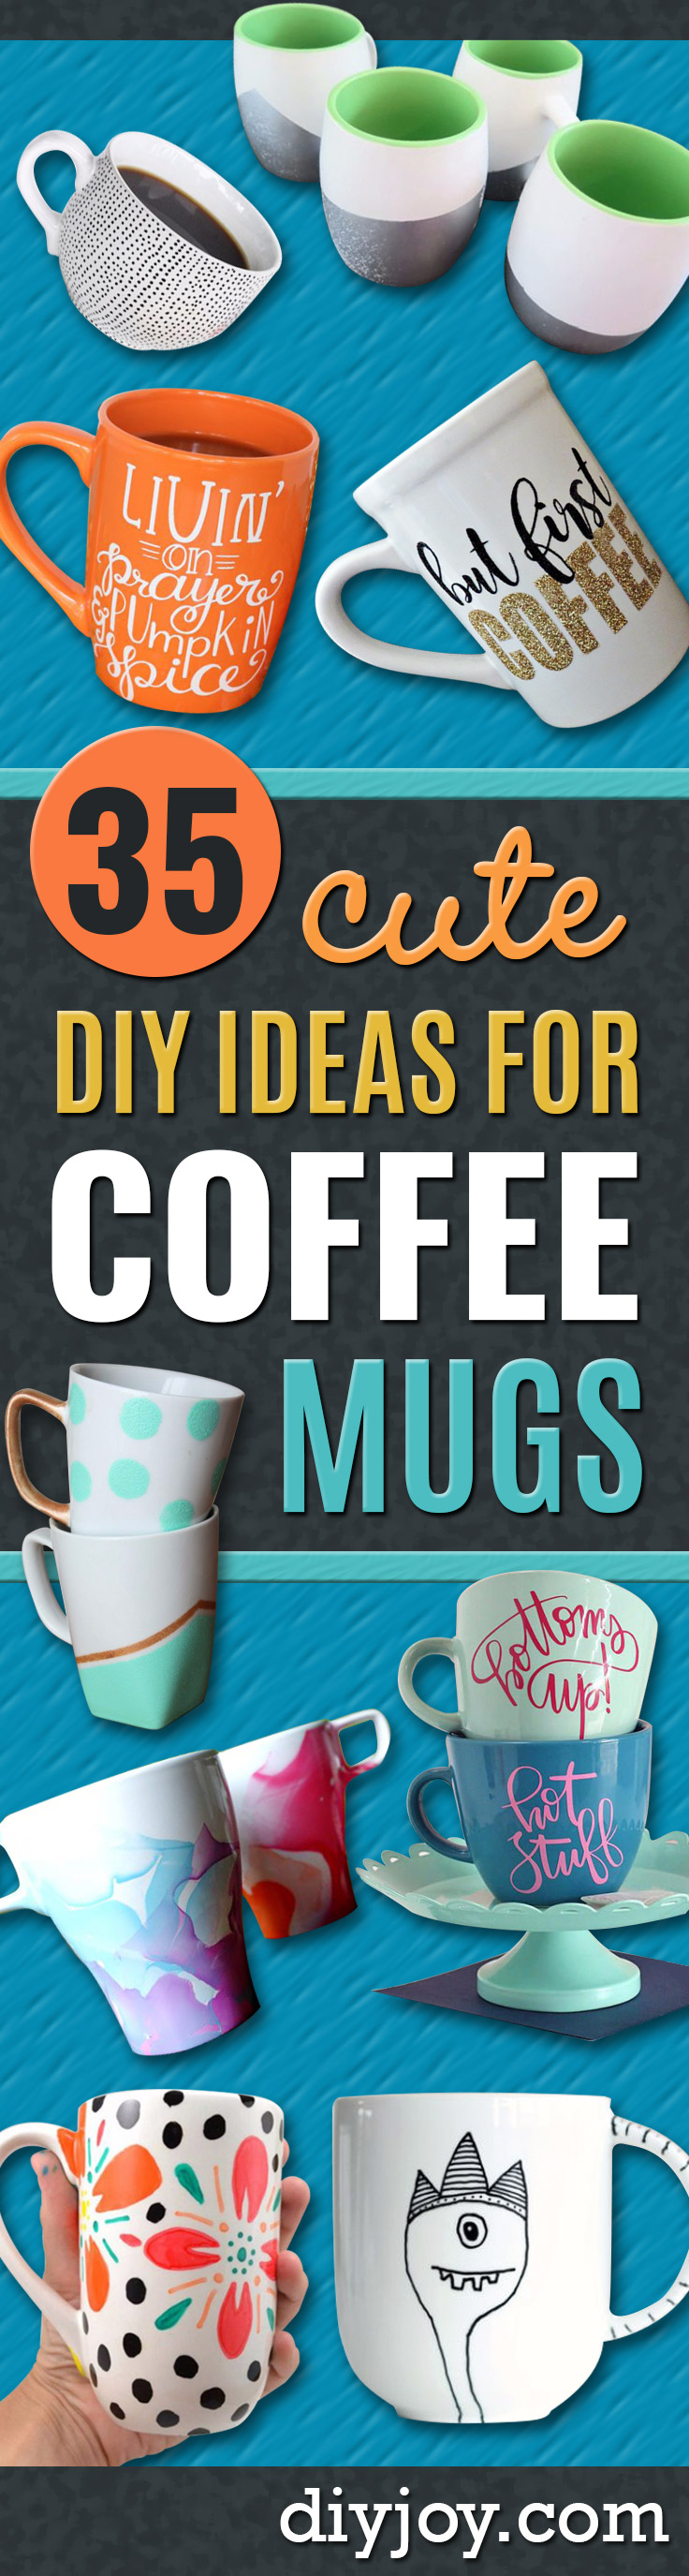 35 Cute Diy Ideas For Coffee Mugs